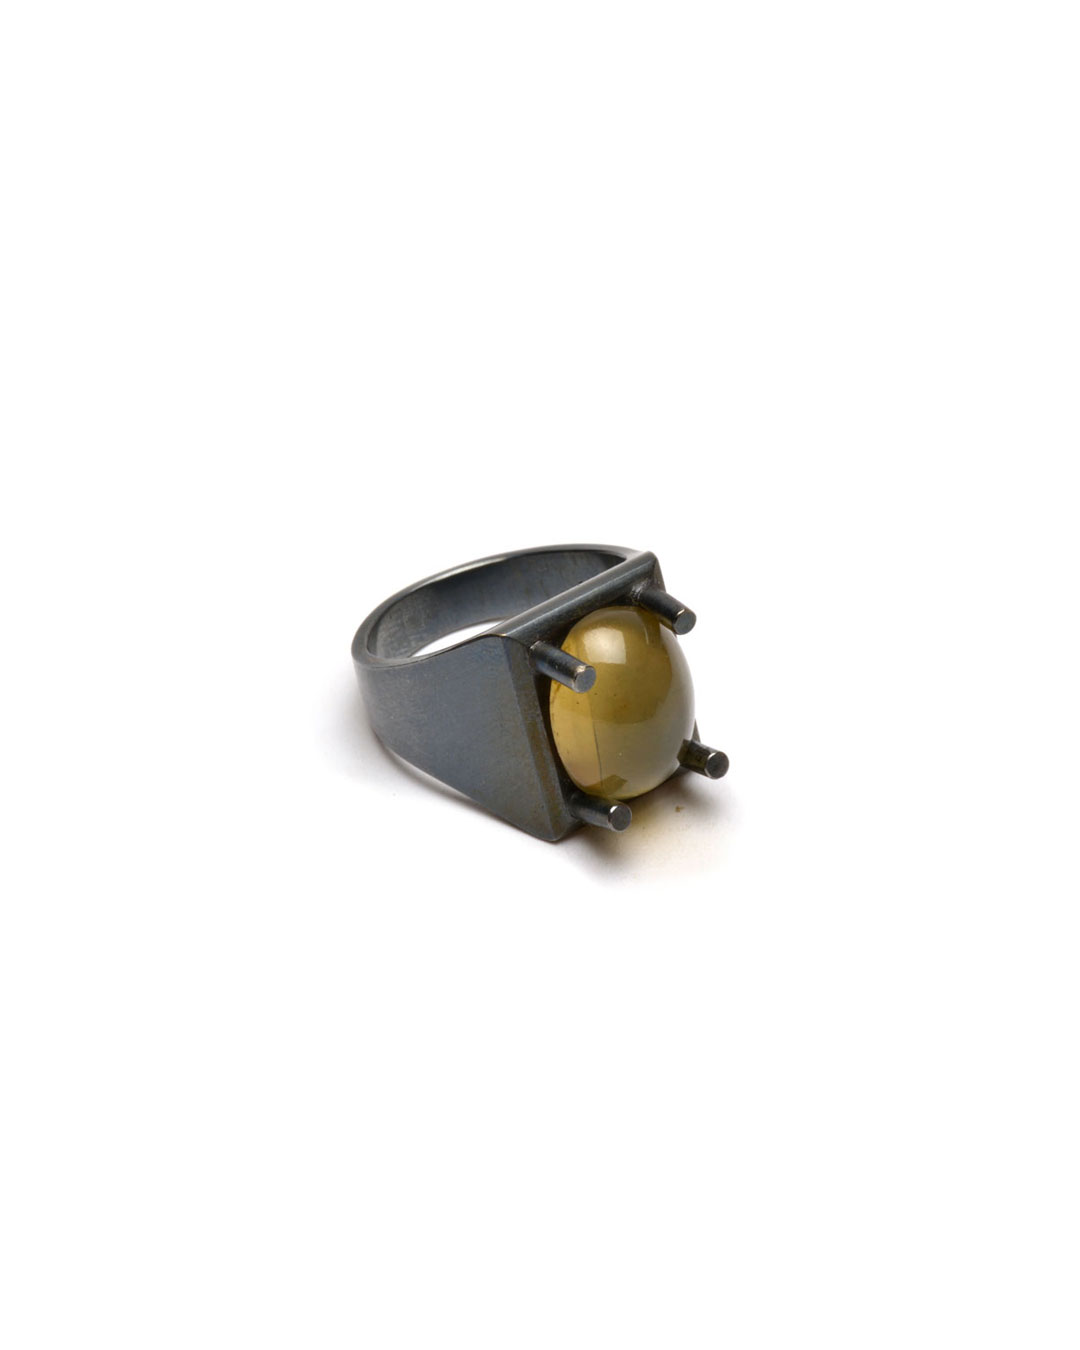 Ute Eitzenhöfer, untitled, 2014, ring; silver, quartz, 30 x 20 x 15 mm, €500